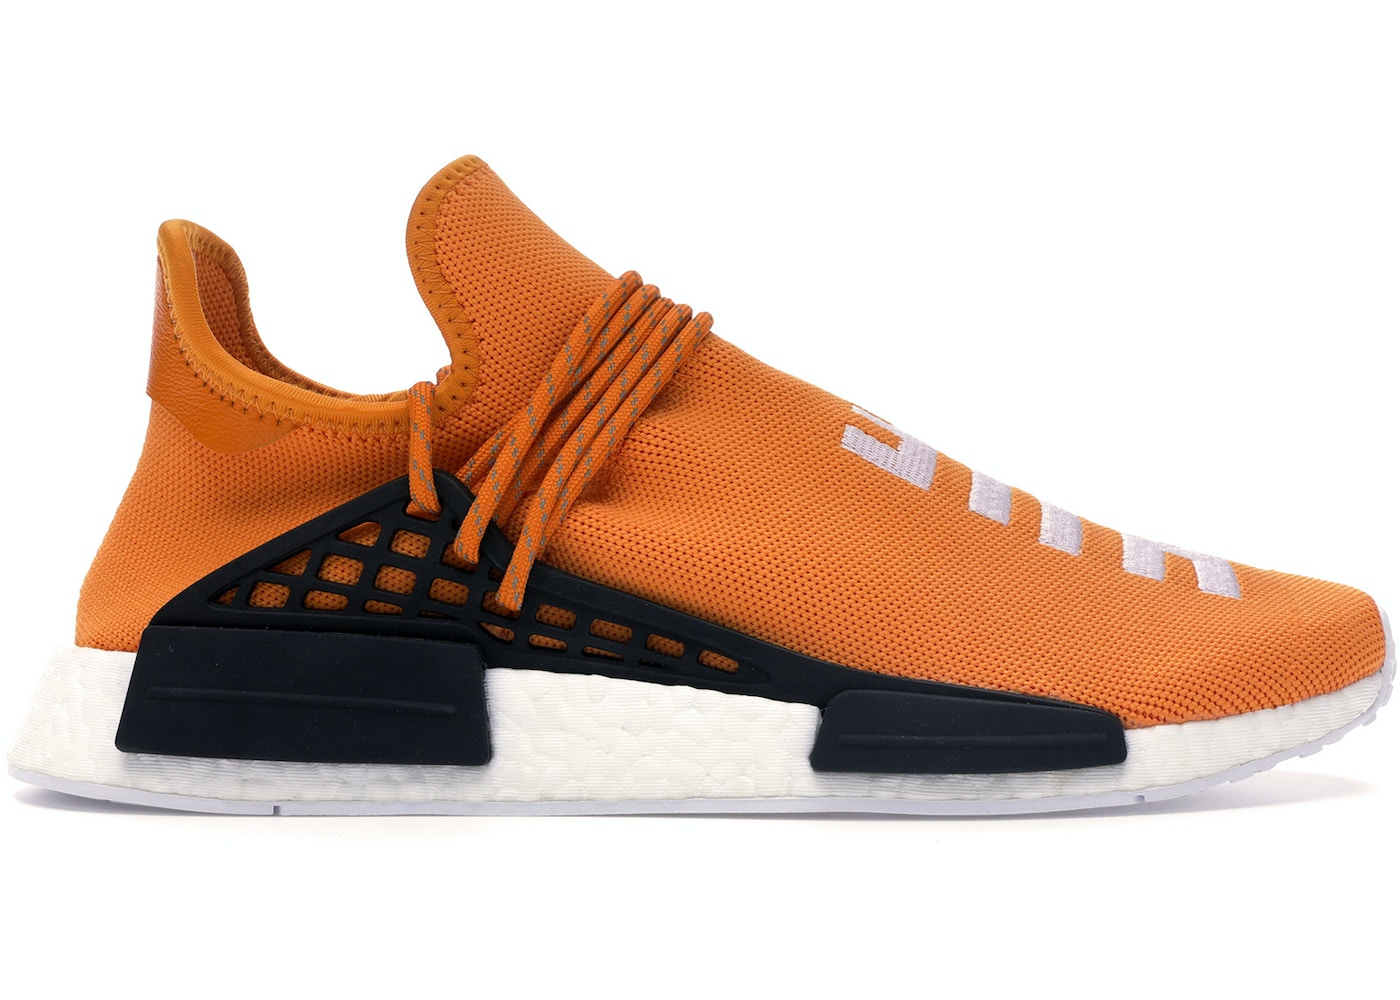 ca44110c7 Buy adidas NMD Shoes   Deadstock Sneakers